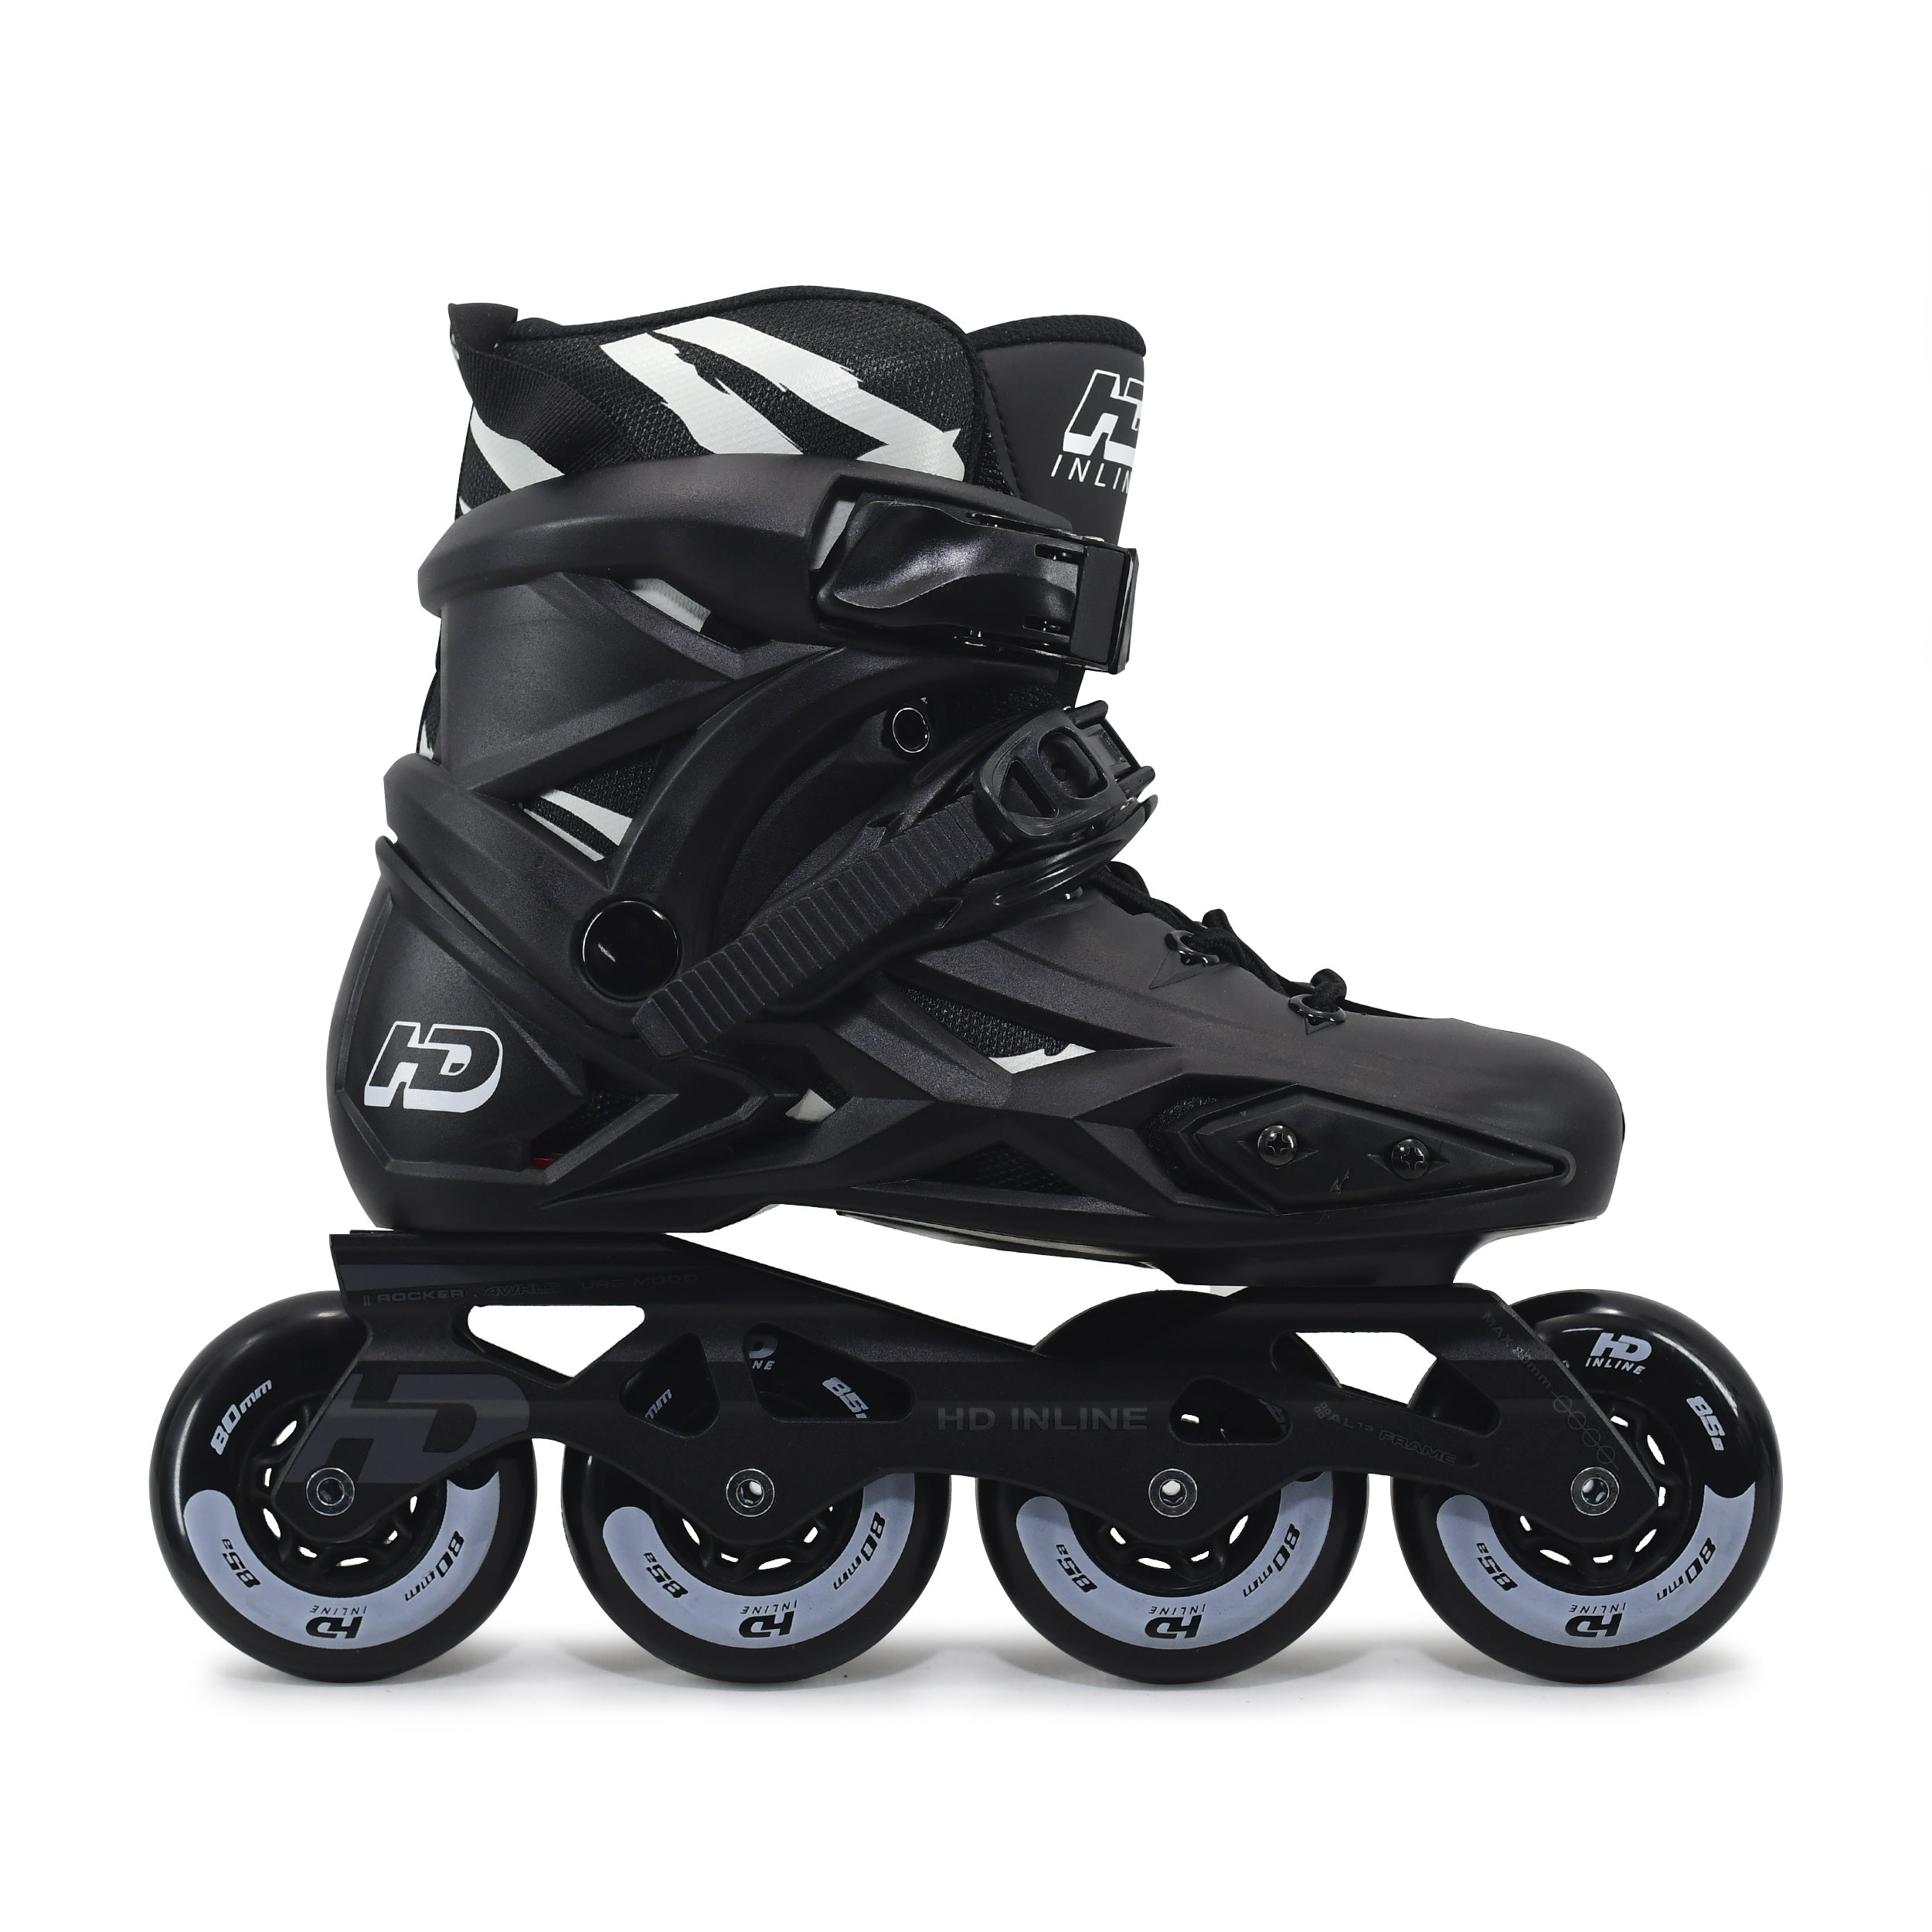 Patins Roller Hd X Profissional 80mm 85a Abec-9